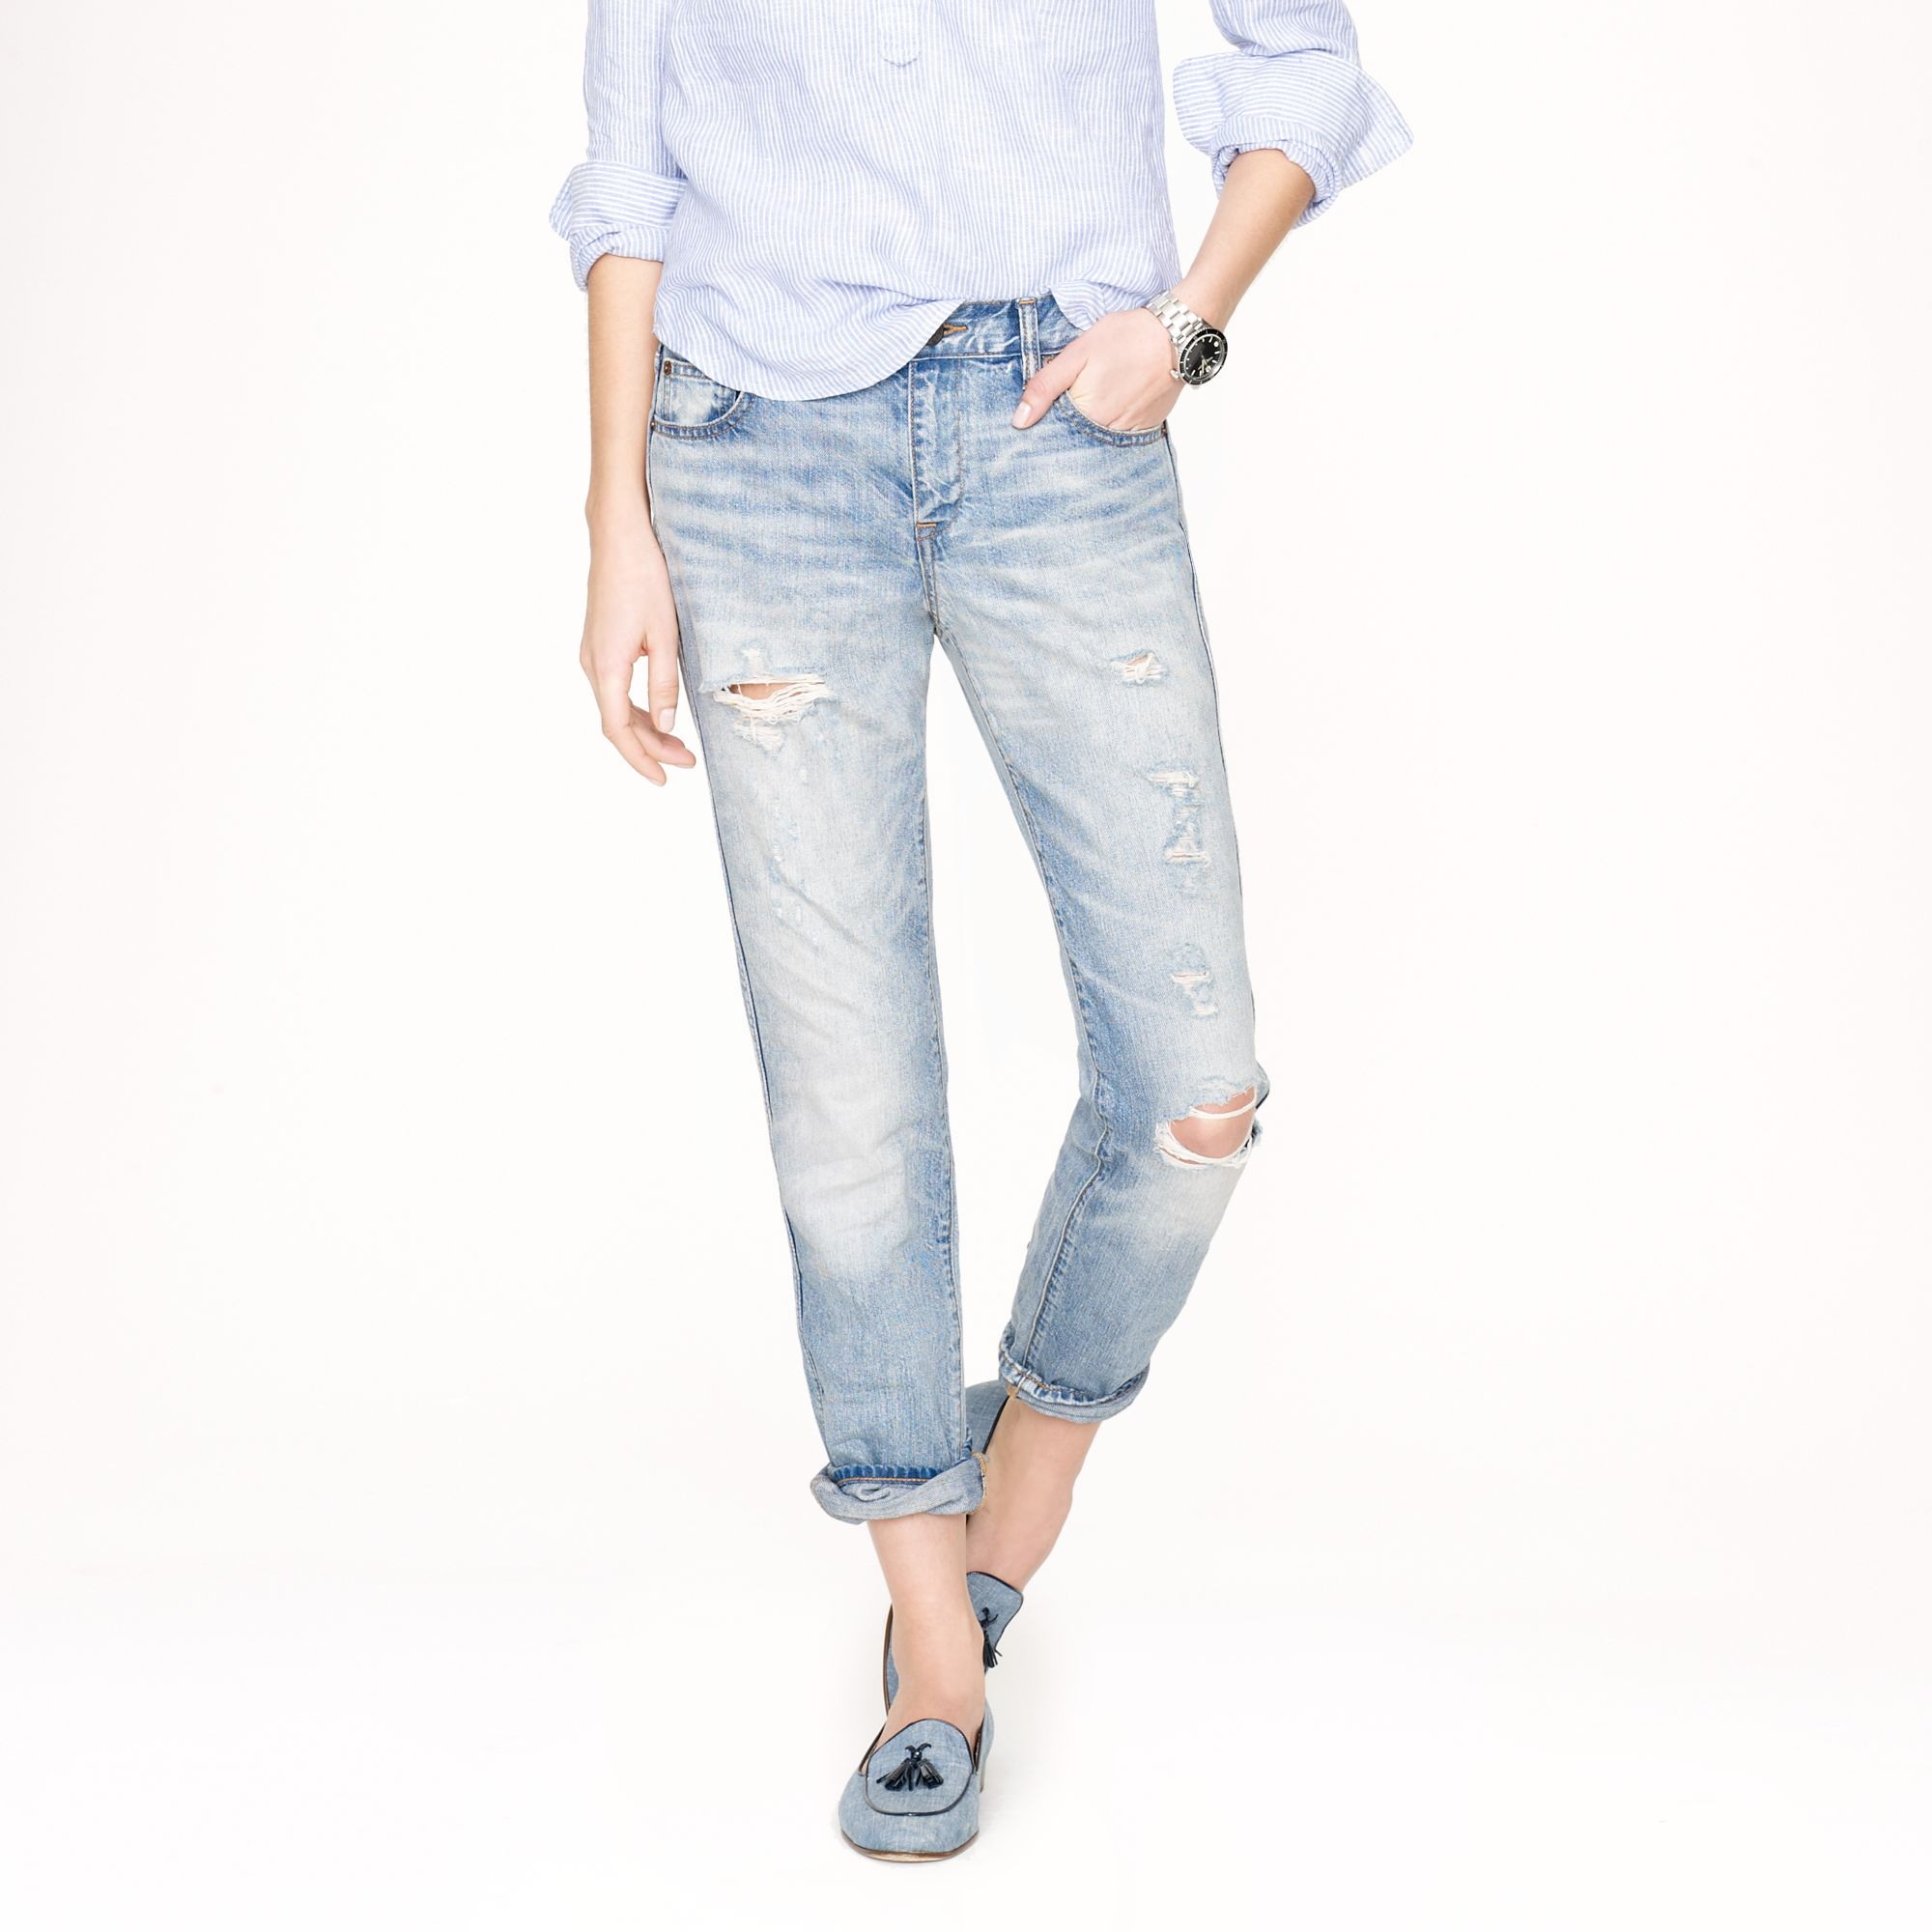 J.Crew Destroyed Boyfriend Jean in Light Roxy Wash | jcrew spring collection